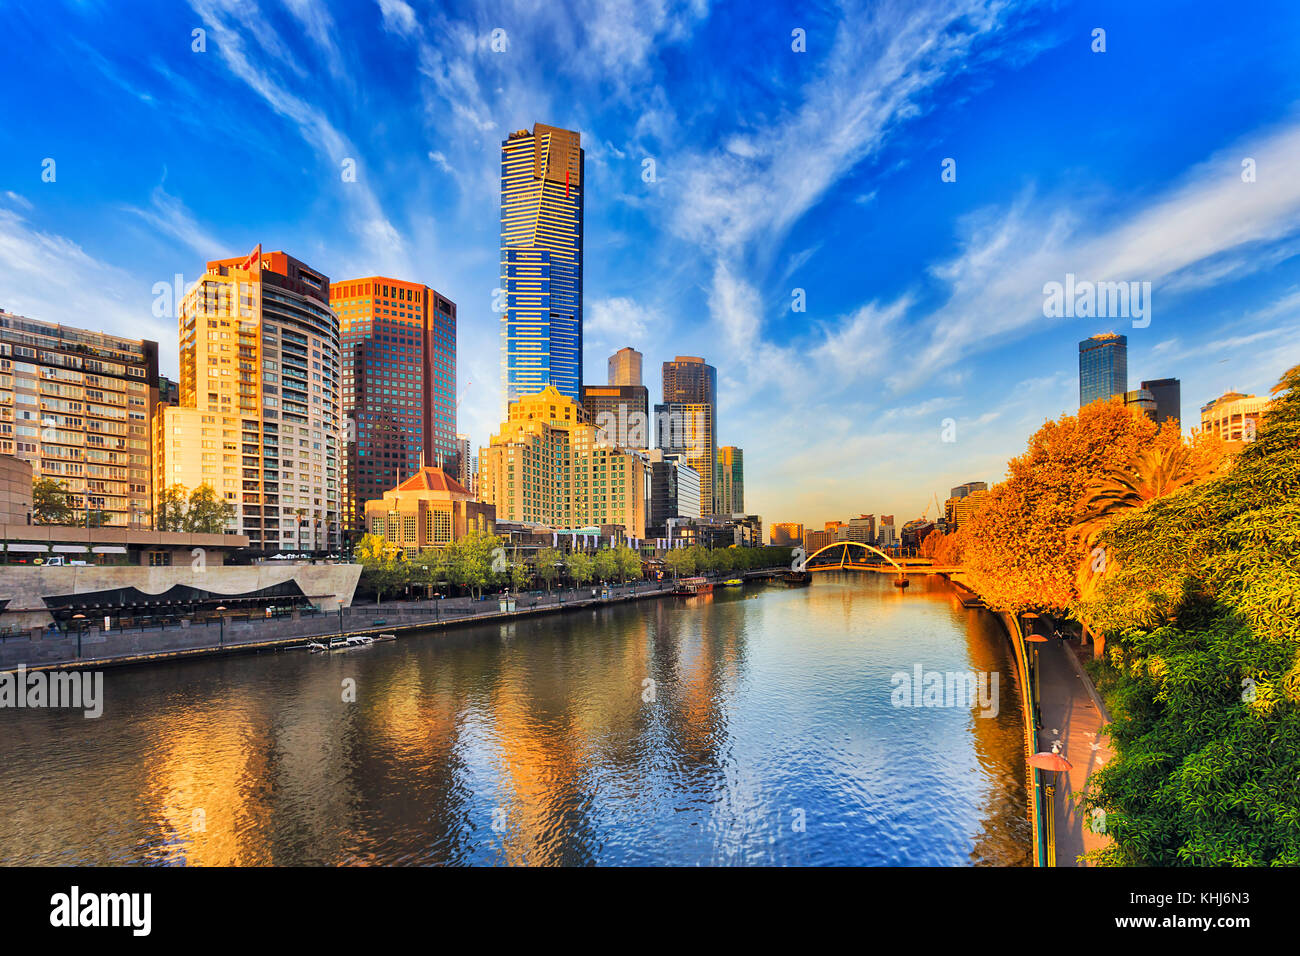 Tallest Melbourne skyscraper Eureka tower dominates South Yarra cityscape over Yarra river in warm morning sunlight - Stock Image